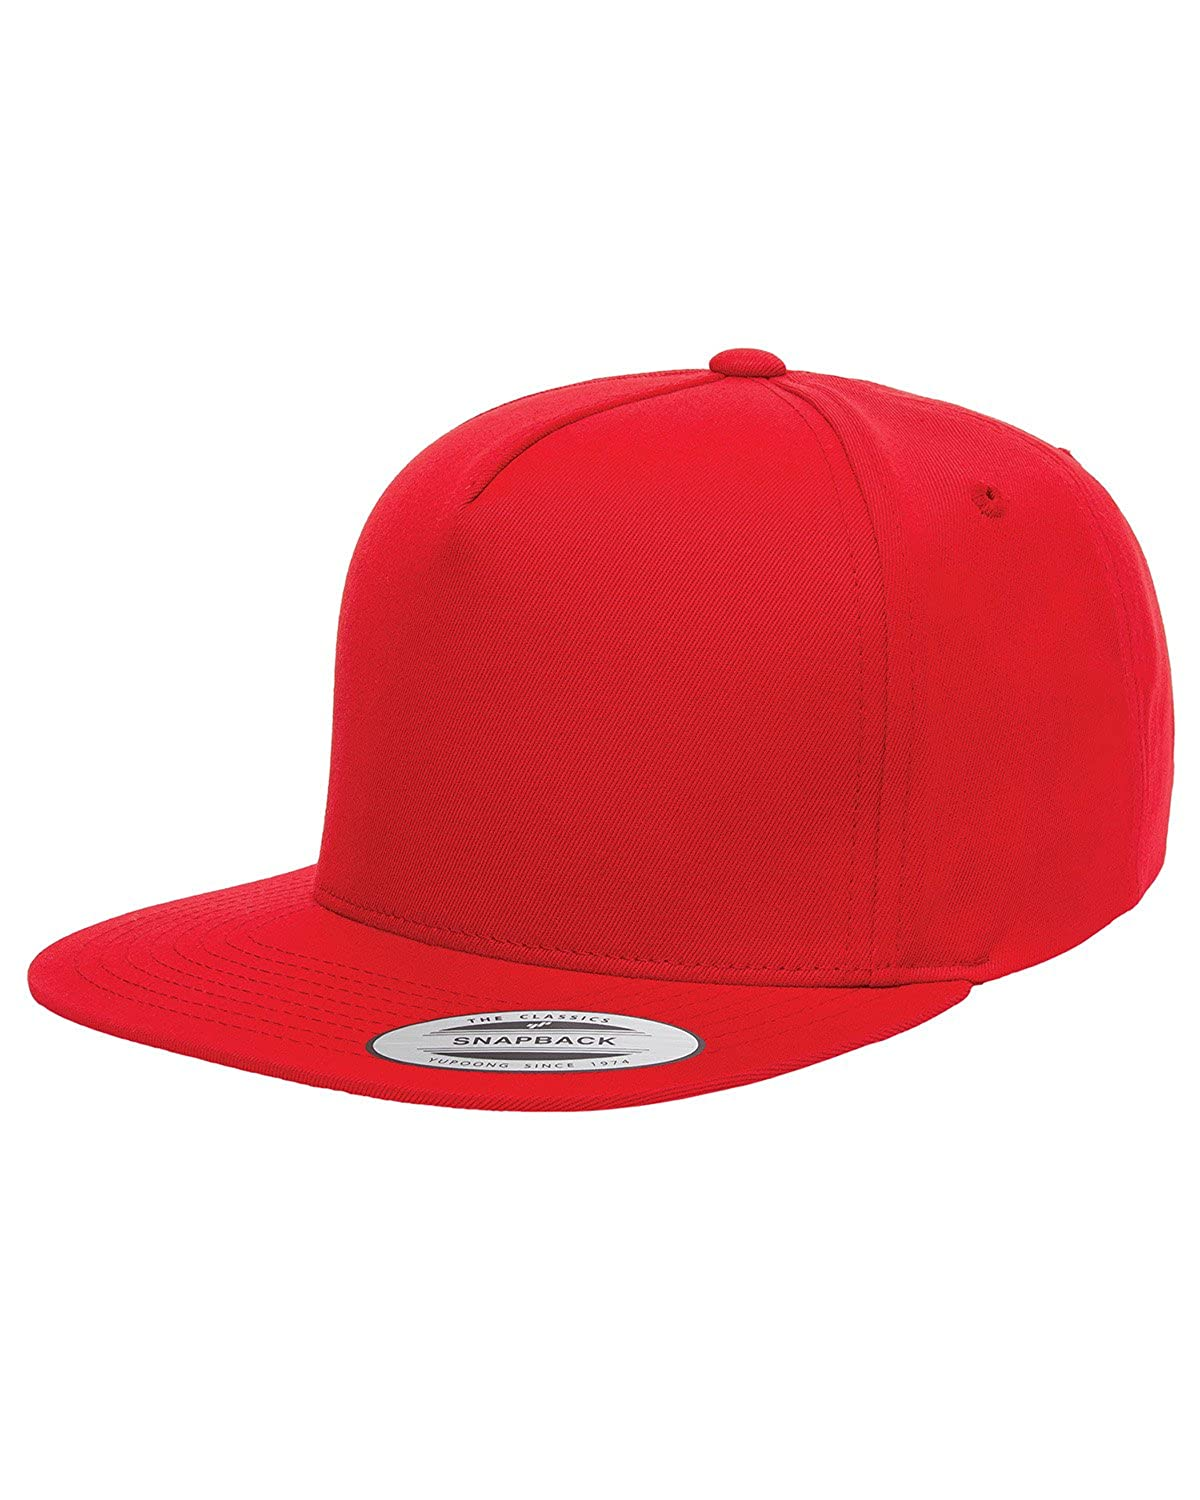 1449358f99d62 Amazon.com  Yupoong Men s 5-Panel Cotton Twill Snapback Cap